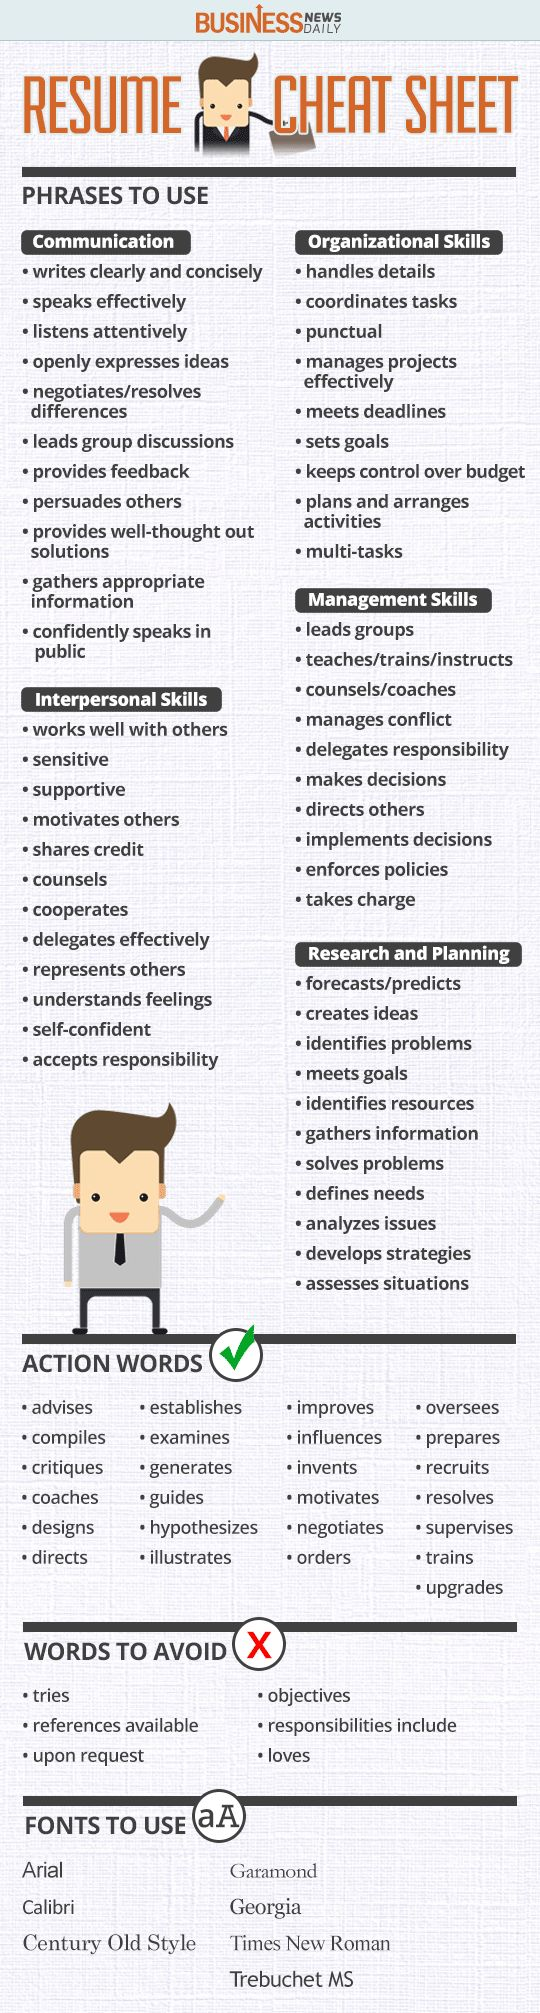 Opposenewapstandardsus  Scenic  Ideas About Resume On Pinterest  Cv Format Resume Cv And  With Fascinating Resume Cheat Sheet Infographic Andrews Almost Done With A Complete Unit On Employment Which With Cool Social Worker Resume Objective Also Reception Resume In Addition Business Operations Manager Resume And Chronological Resume Examples As Well As Federal Government Resume Format Additionally New Graduate Rn Resume From Pinterestcom With Opposenewapstandardsus  Fascinating  Ideas About Resume On Pinterest  Cv Format Resume Cv And  With Cool Resume Cheat Sheet Infographic Andrews Almost Done With A Complete Unit On Employment Which And Scenic Social Worker Resume Objective Also Reception Resume In Addition Business Operations Manager Resume From Pinterestcom